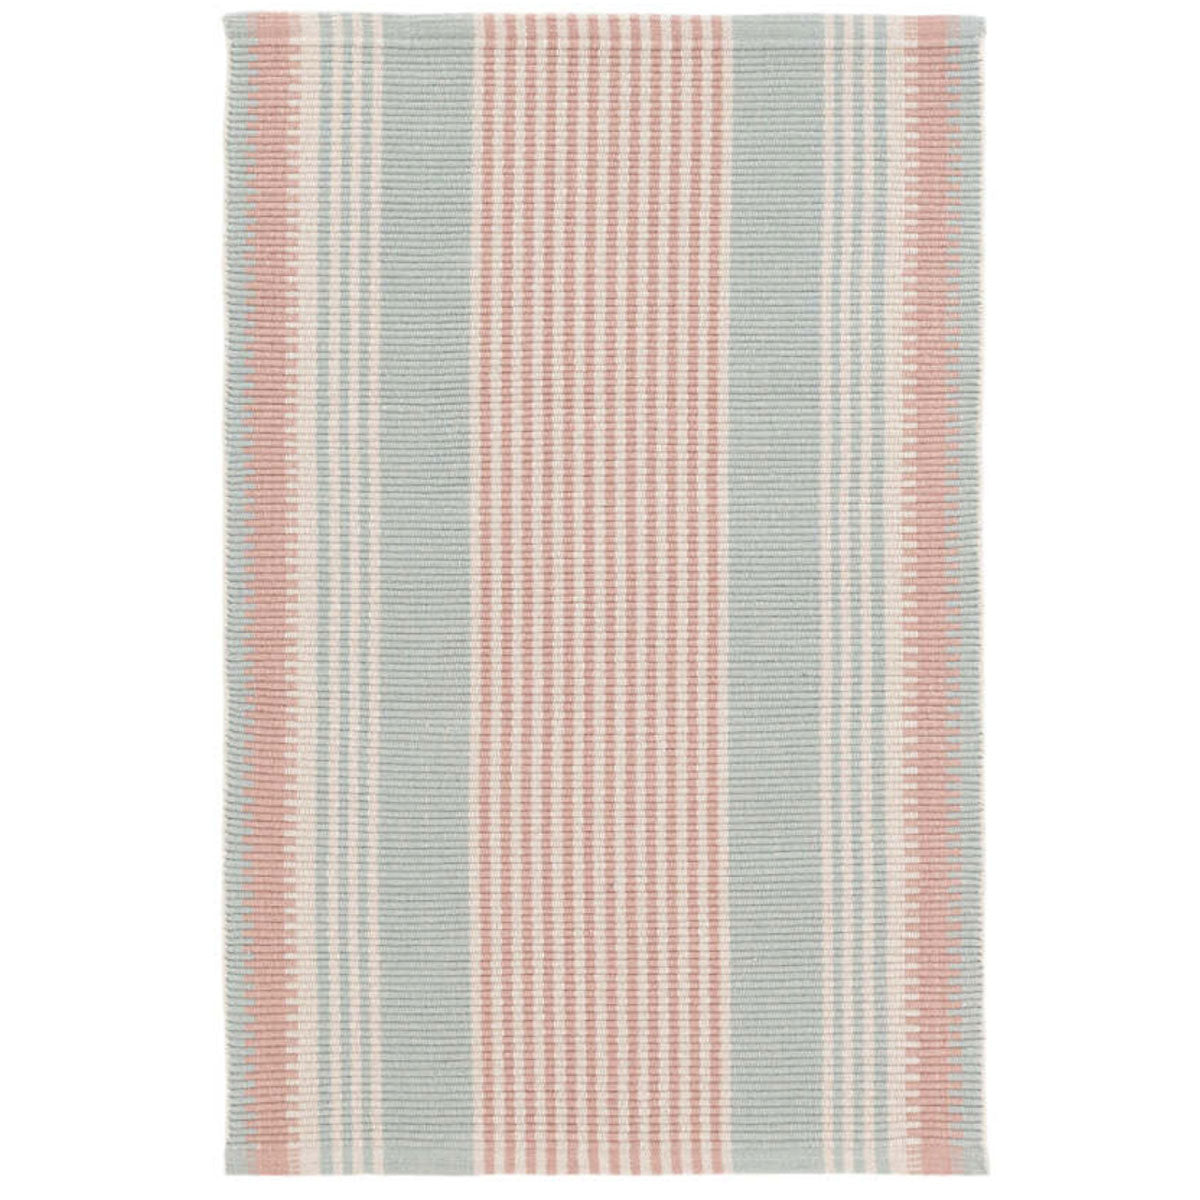 Sea Island Striped Rug